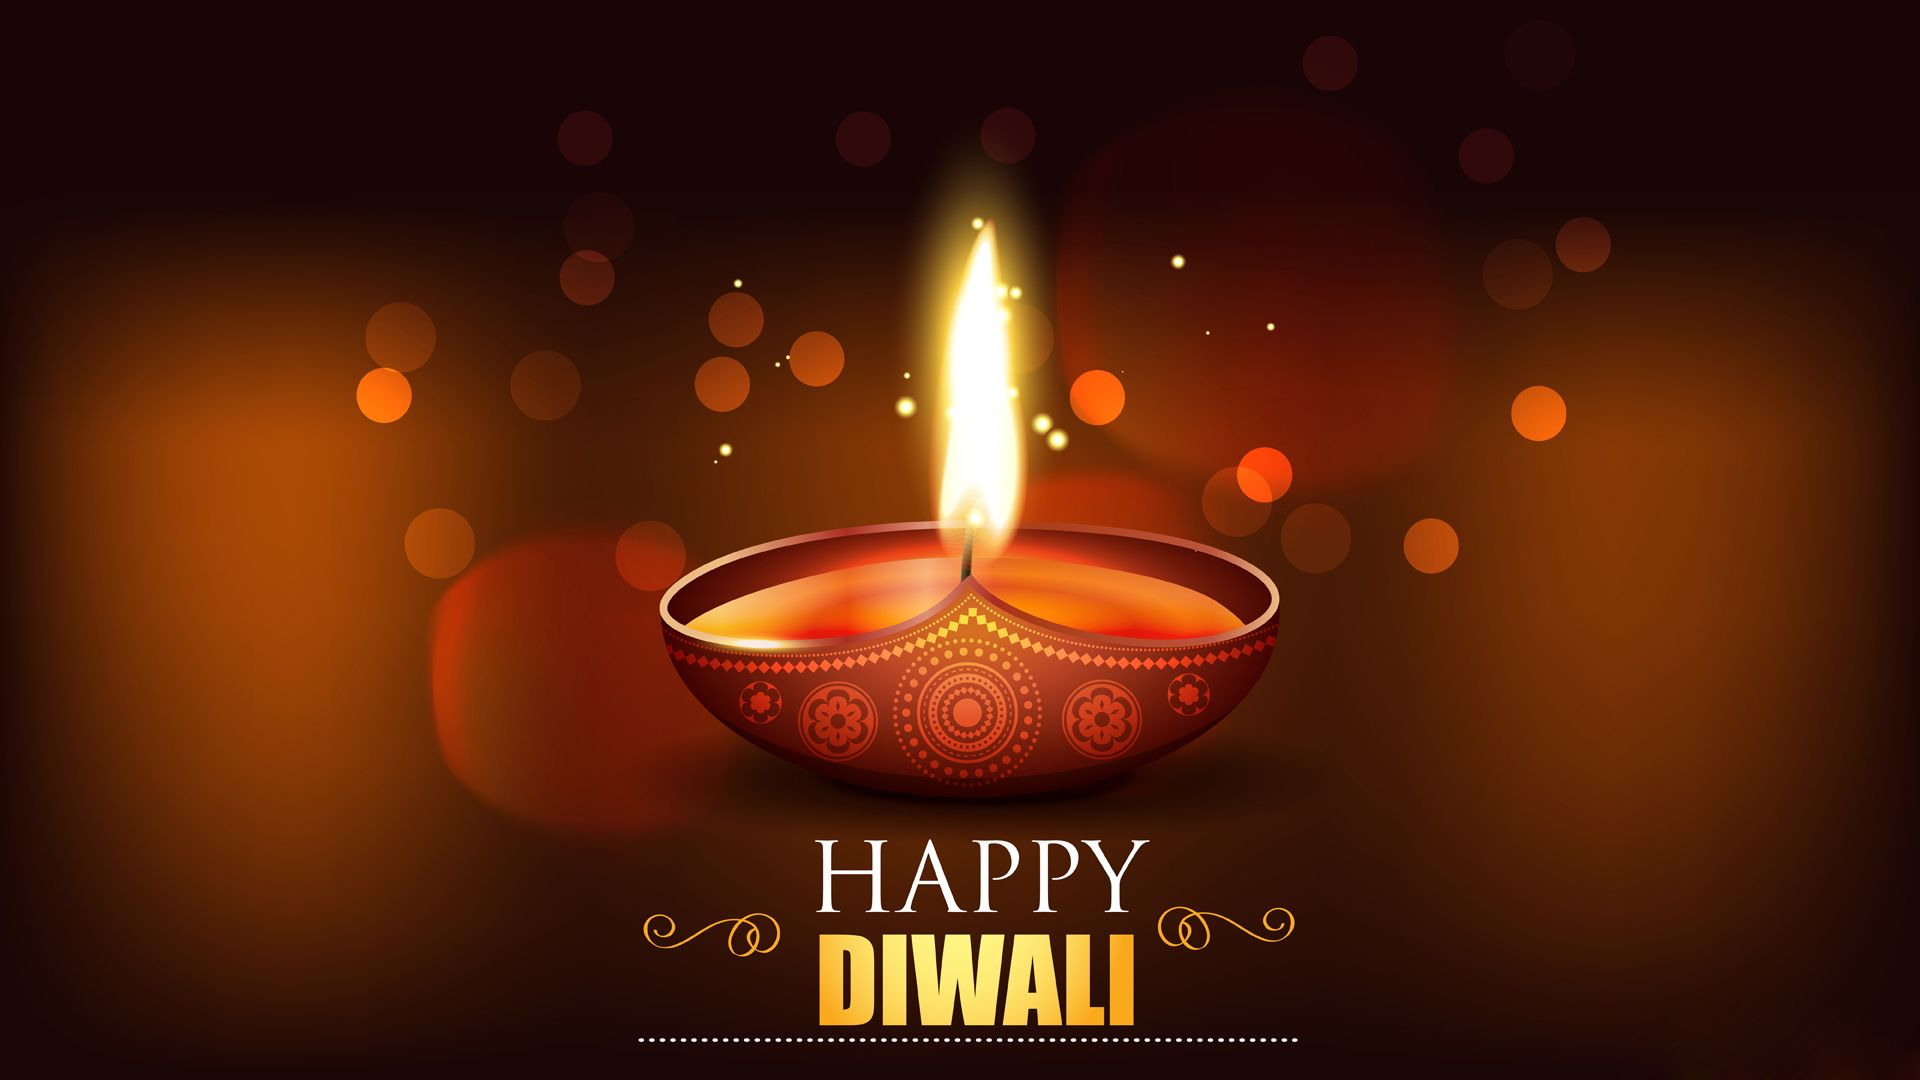 Happy Diwali Diya HD Wallpaper Happy Diwali, HD, Wallpaper